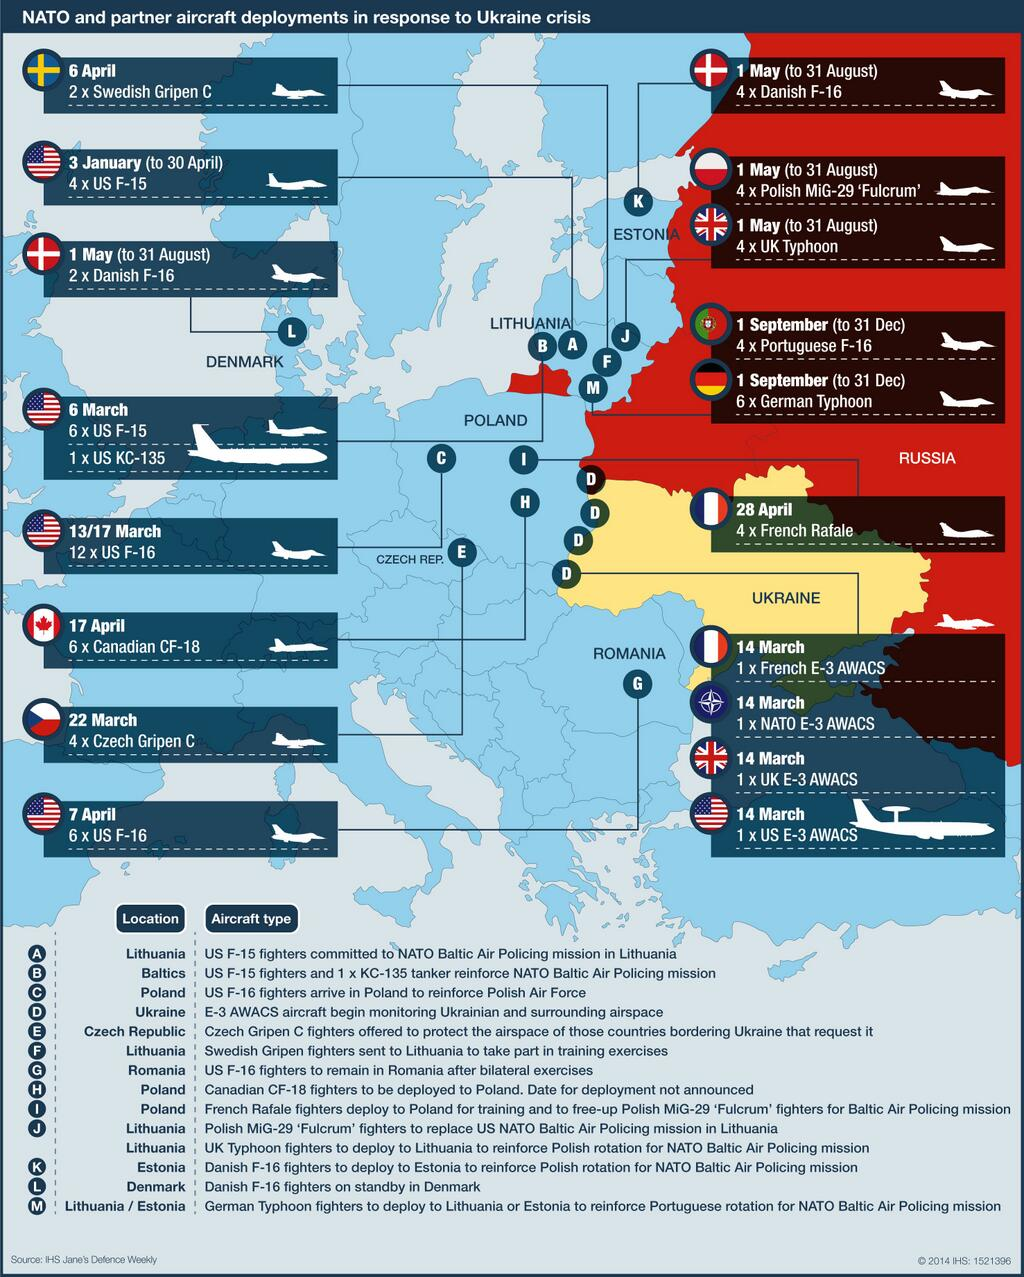 All NATO Aircraft Deployments In Response To The Ukraine Crisis